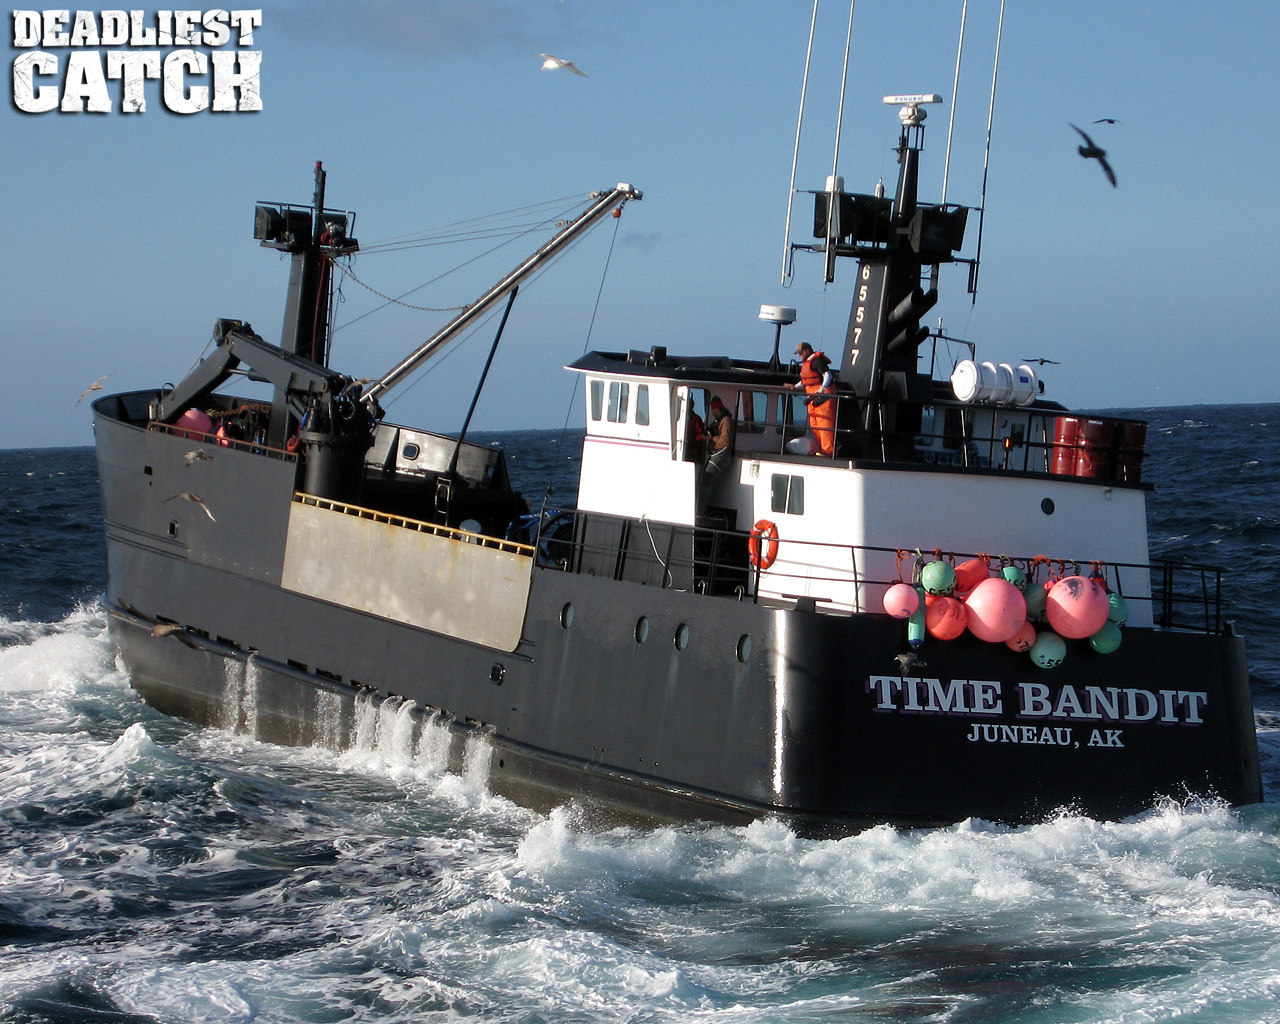 Time Bandit in the Deadliest Catch is using Beam Oceana 800 FleetPhone    Deadliest Catch Time Bandit